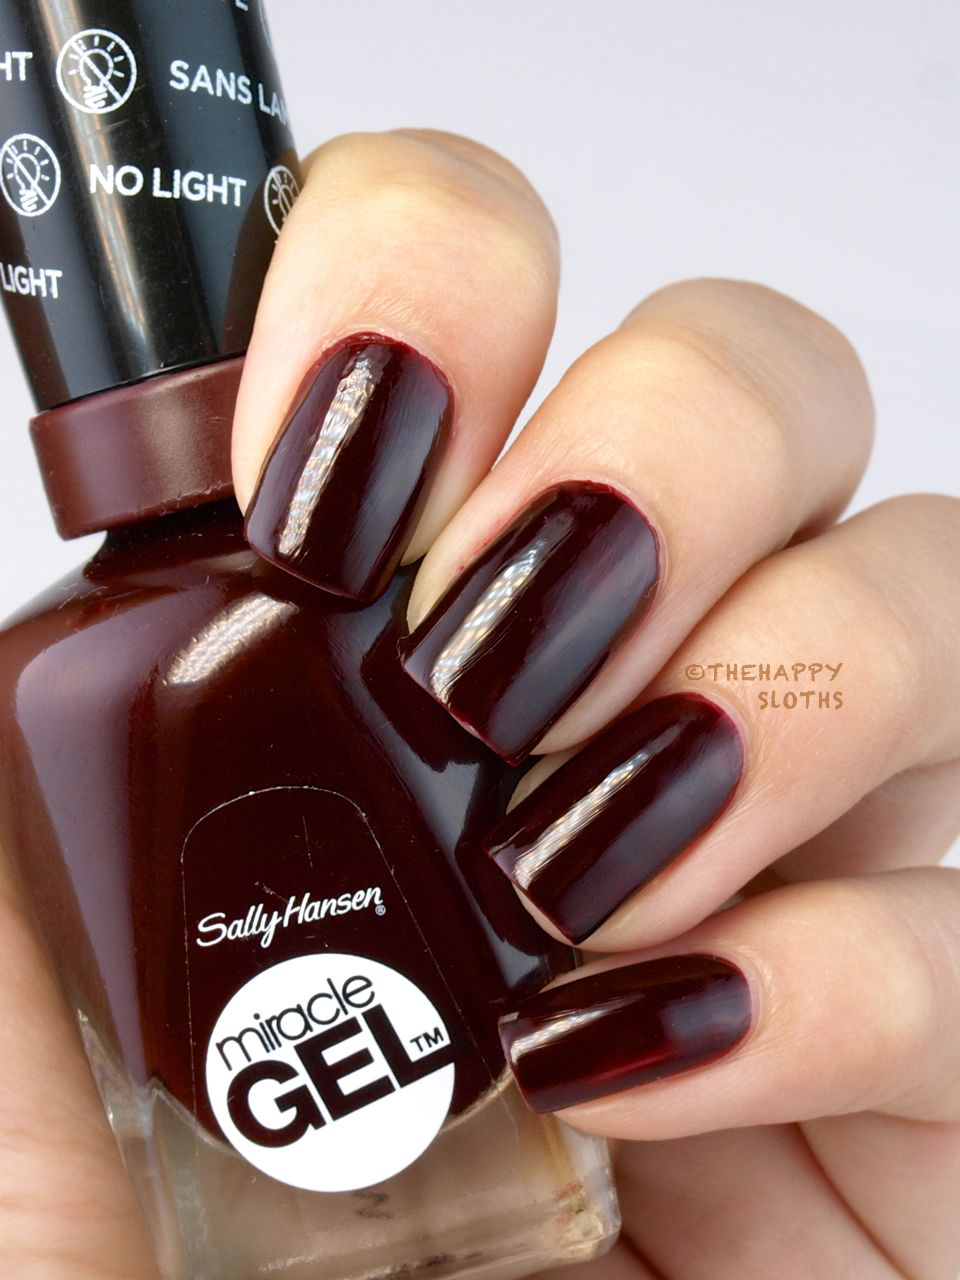 Sally Hansen Miracle Gel Nail Polish + Top Coat: Review and Swatches